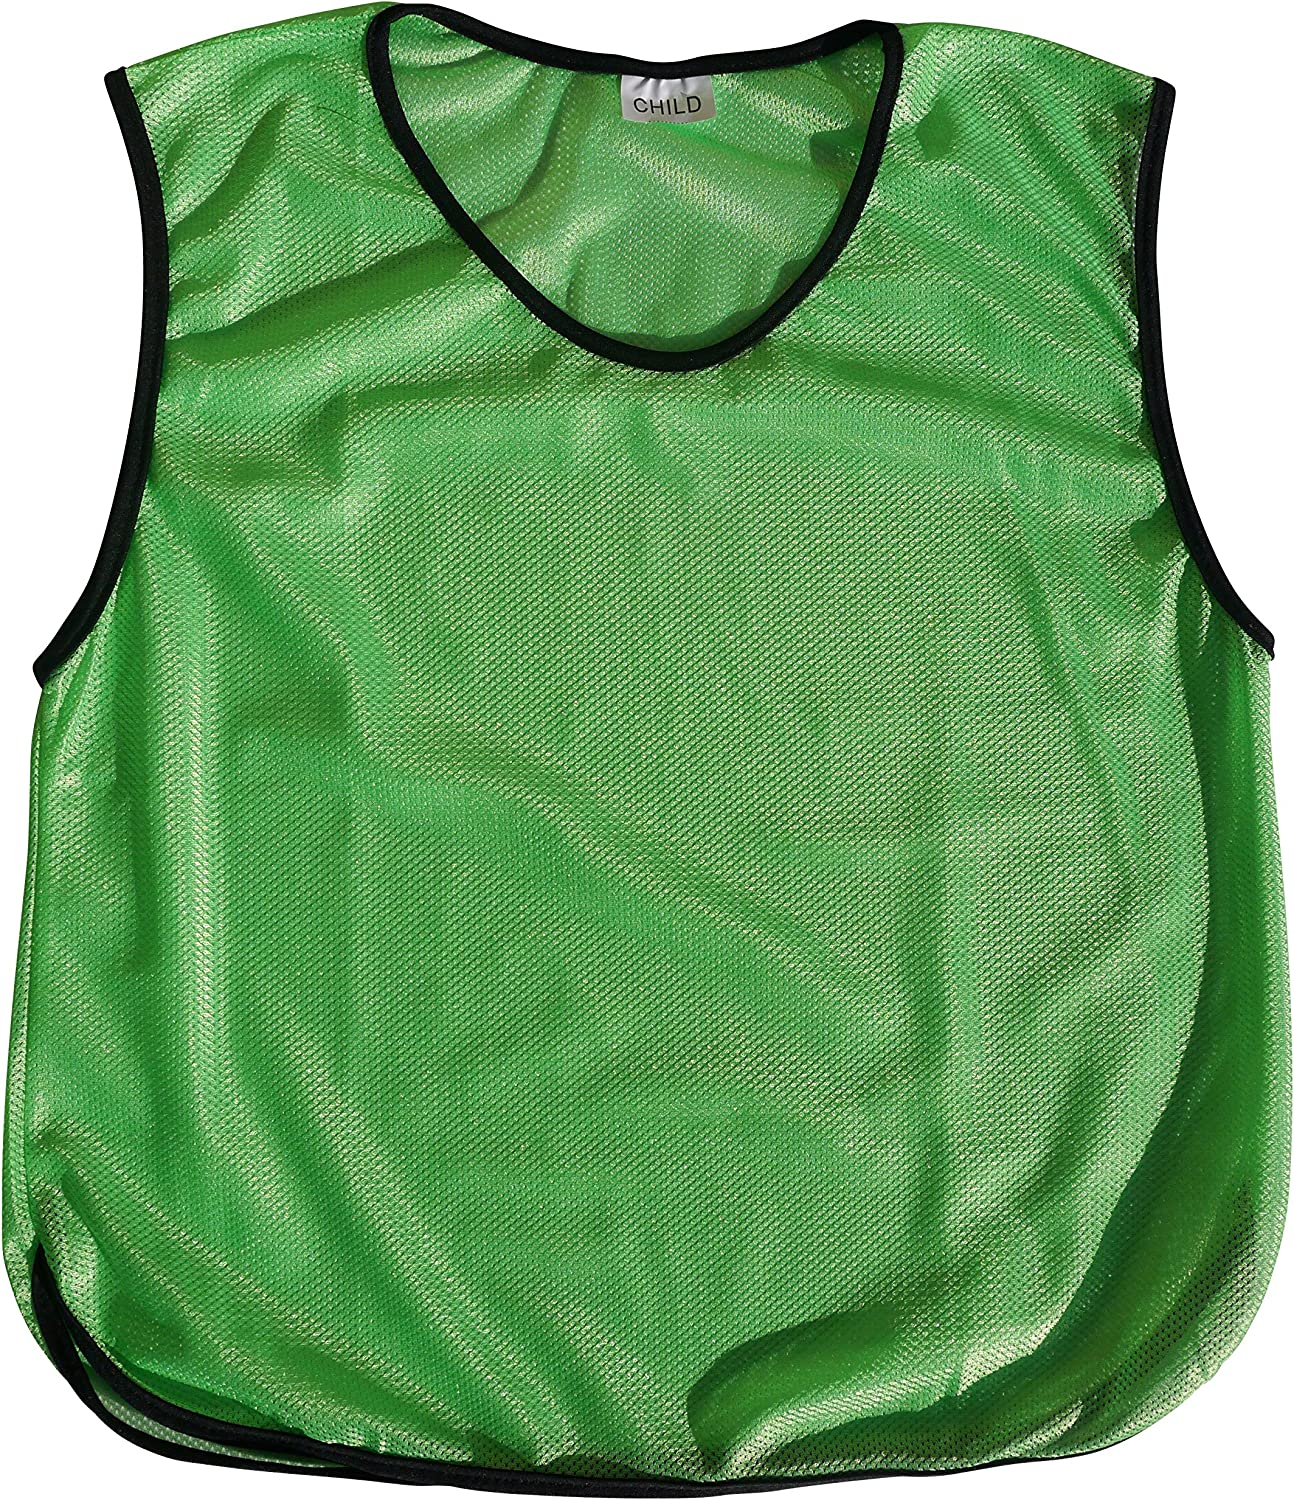 Max 52% OFF Spruce Athletic 6 Youth Practice 100% Pinnies Pol Jerseys Bibs Super Special SALE held